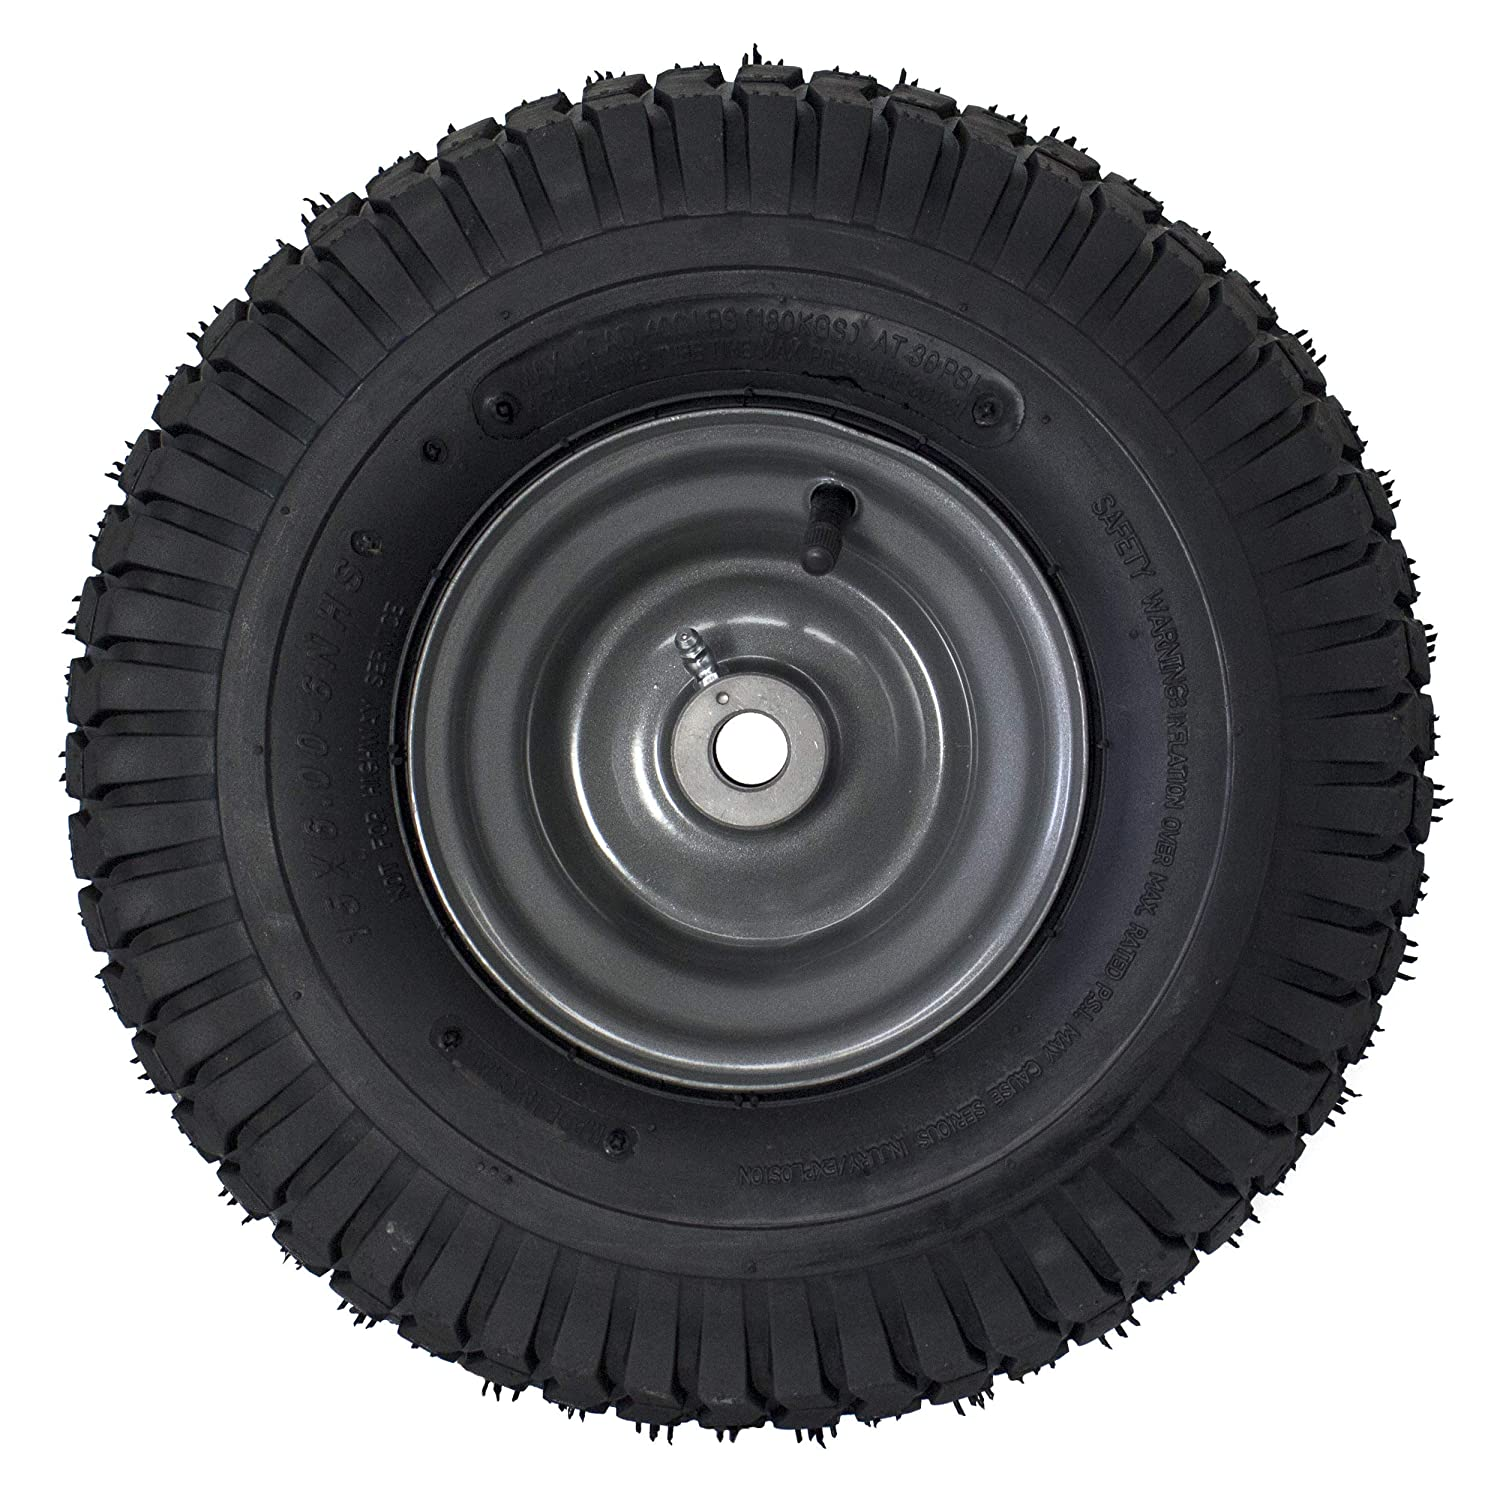 """Amazon.com : MARASTAR 15x6.00-6"""" Front Tire Assembly Replacement for  Craftsman Riding Mowers (21446) : Garden & Outdoor"""